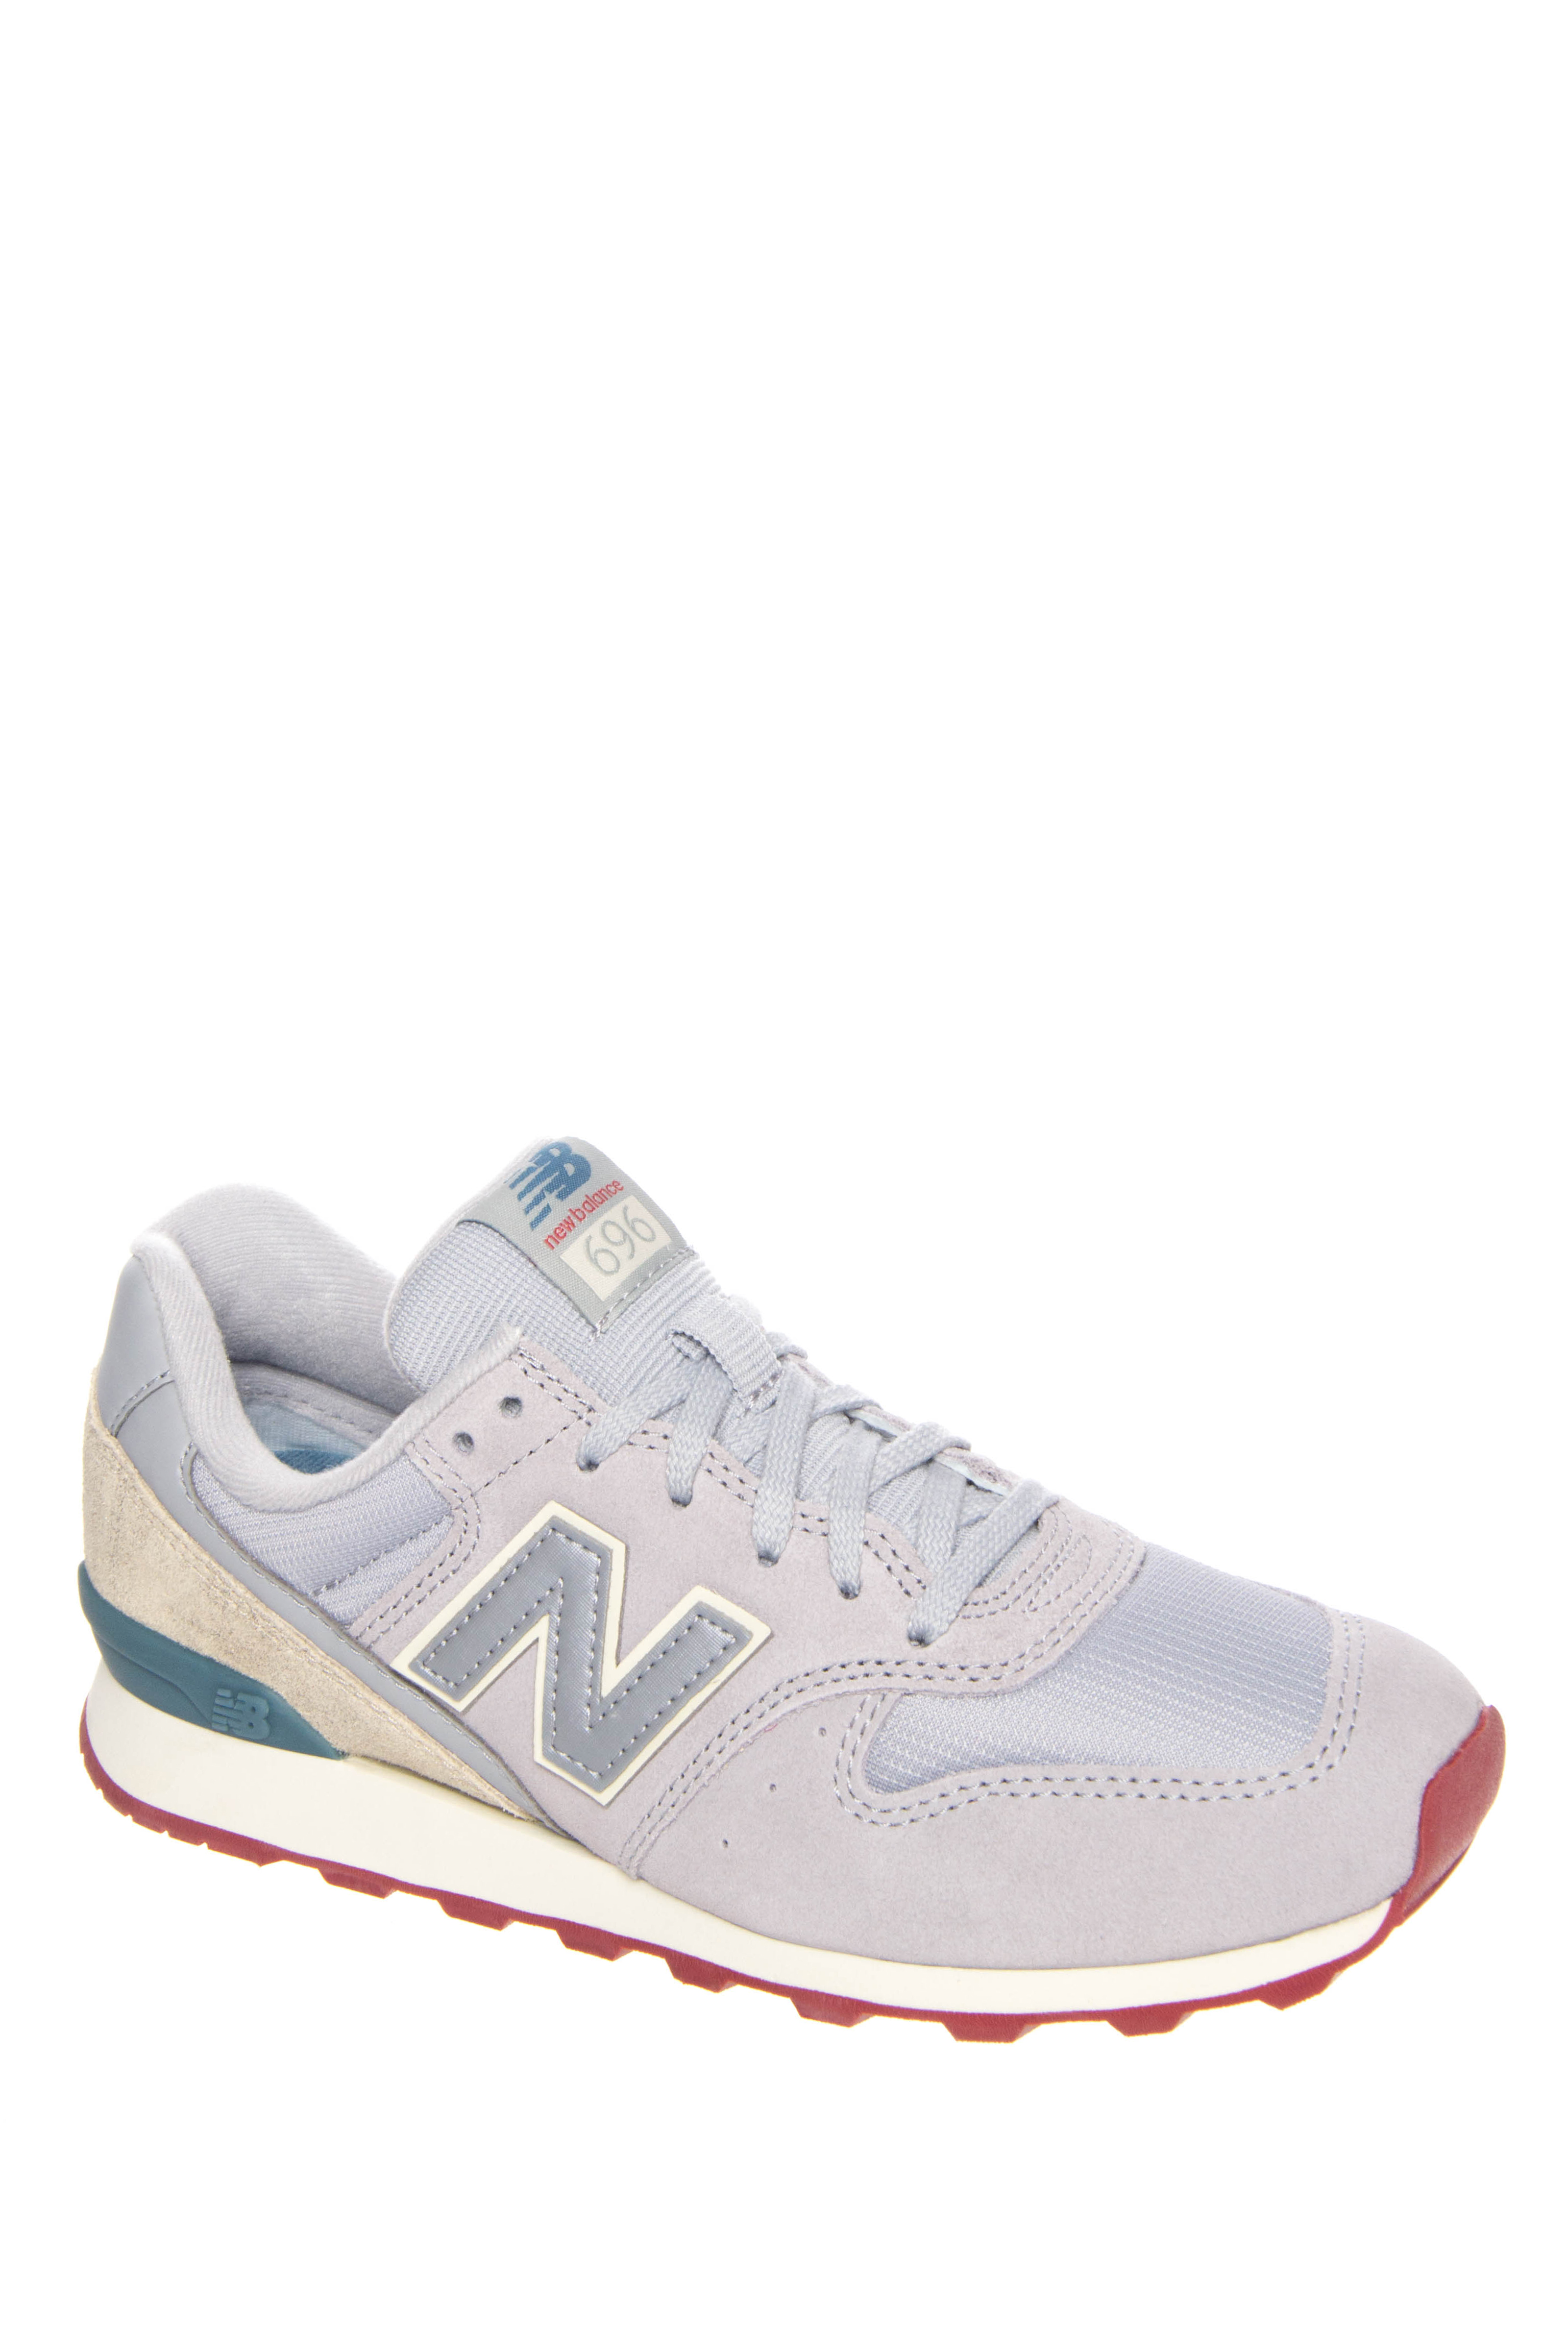 New Balance 696 Capsule Low Top Sneakers - Silver Mink / Powder / Riptide